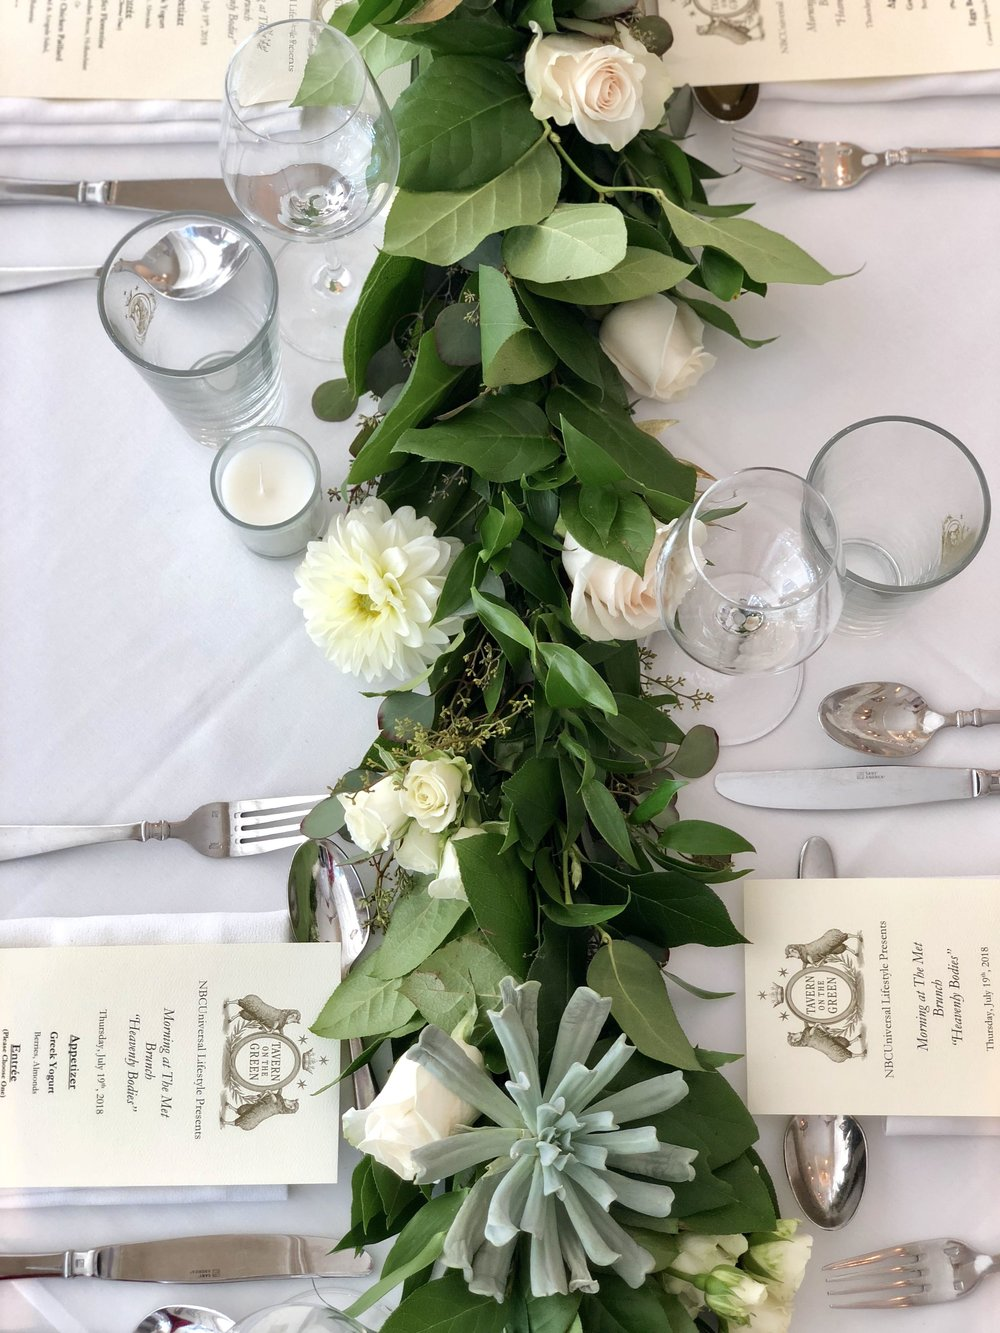 Greenery Table Runner Details for NBCUniversal- B Floral